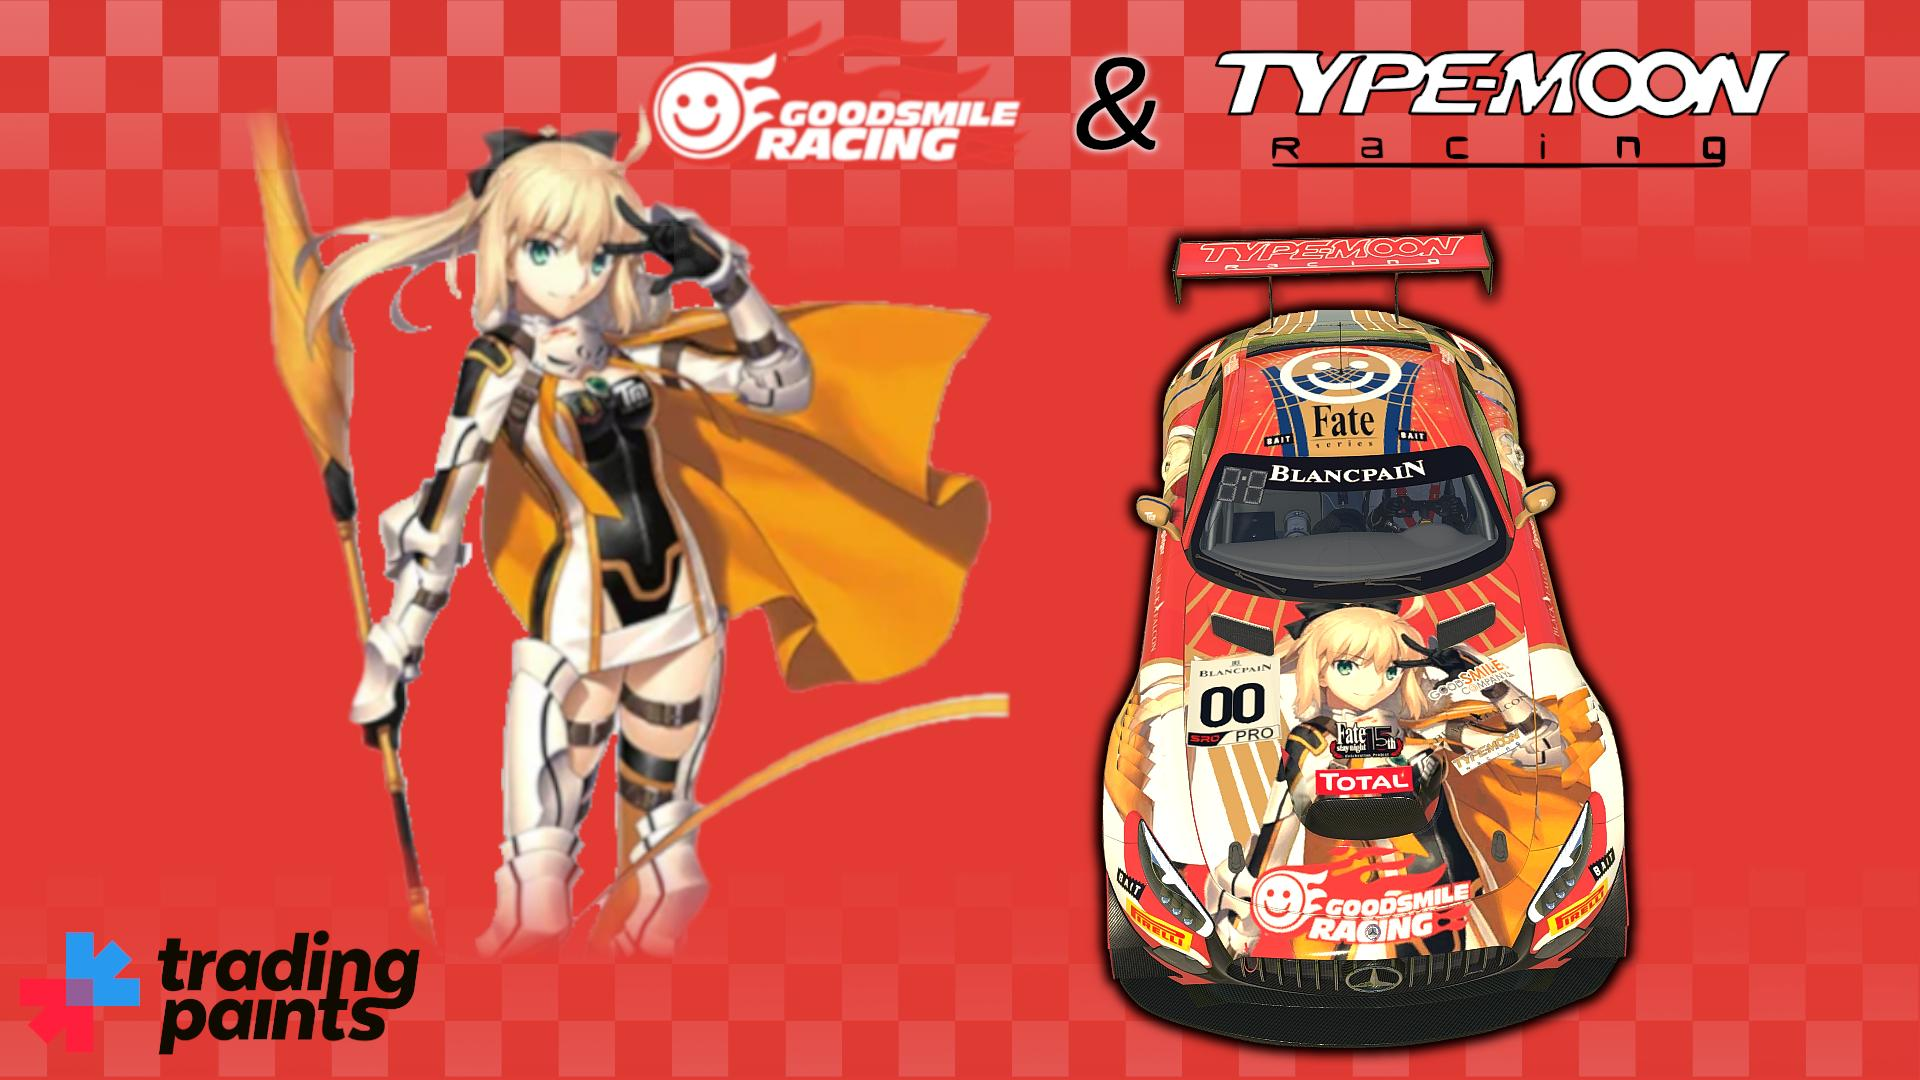 Preview of #00 Goodsmile Racing & Type-Moon Fate Spa 2019 Mercedes AMG GT3 by Andrzej Frysiak